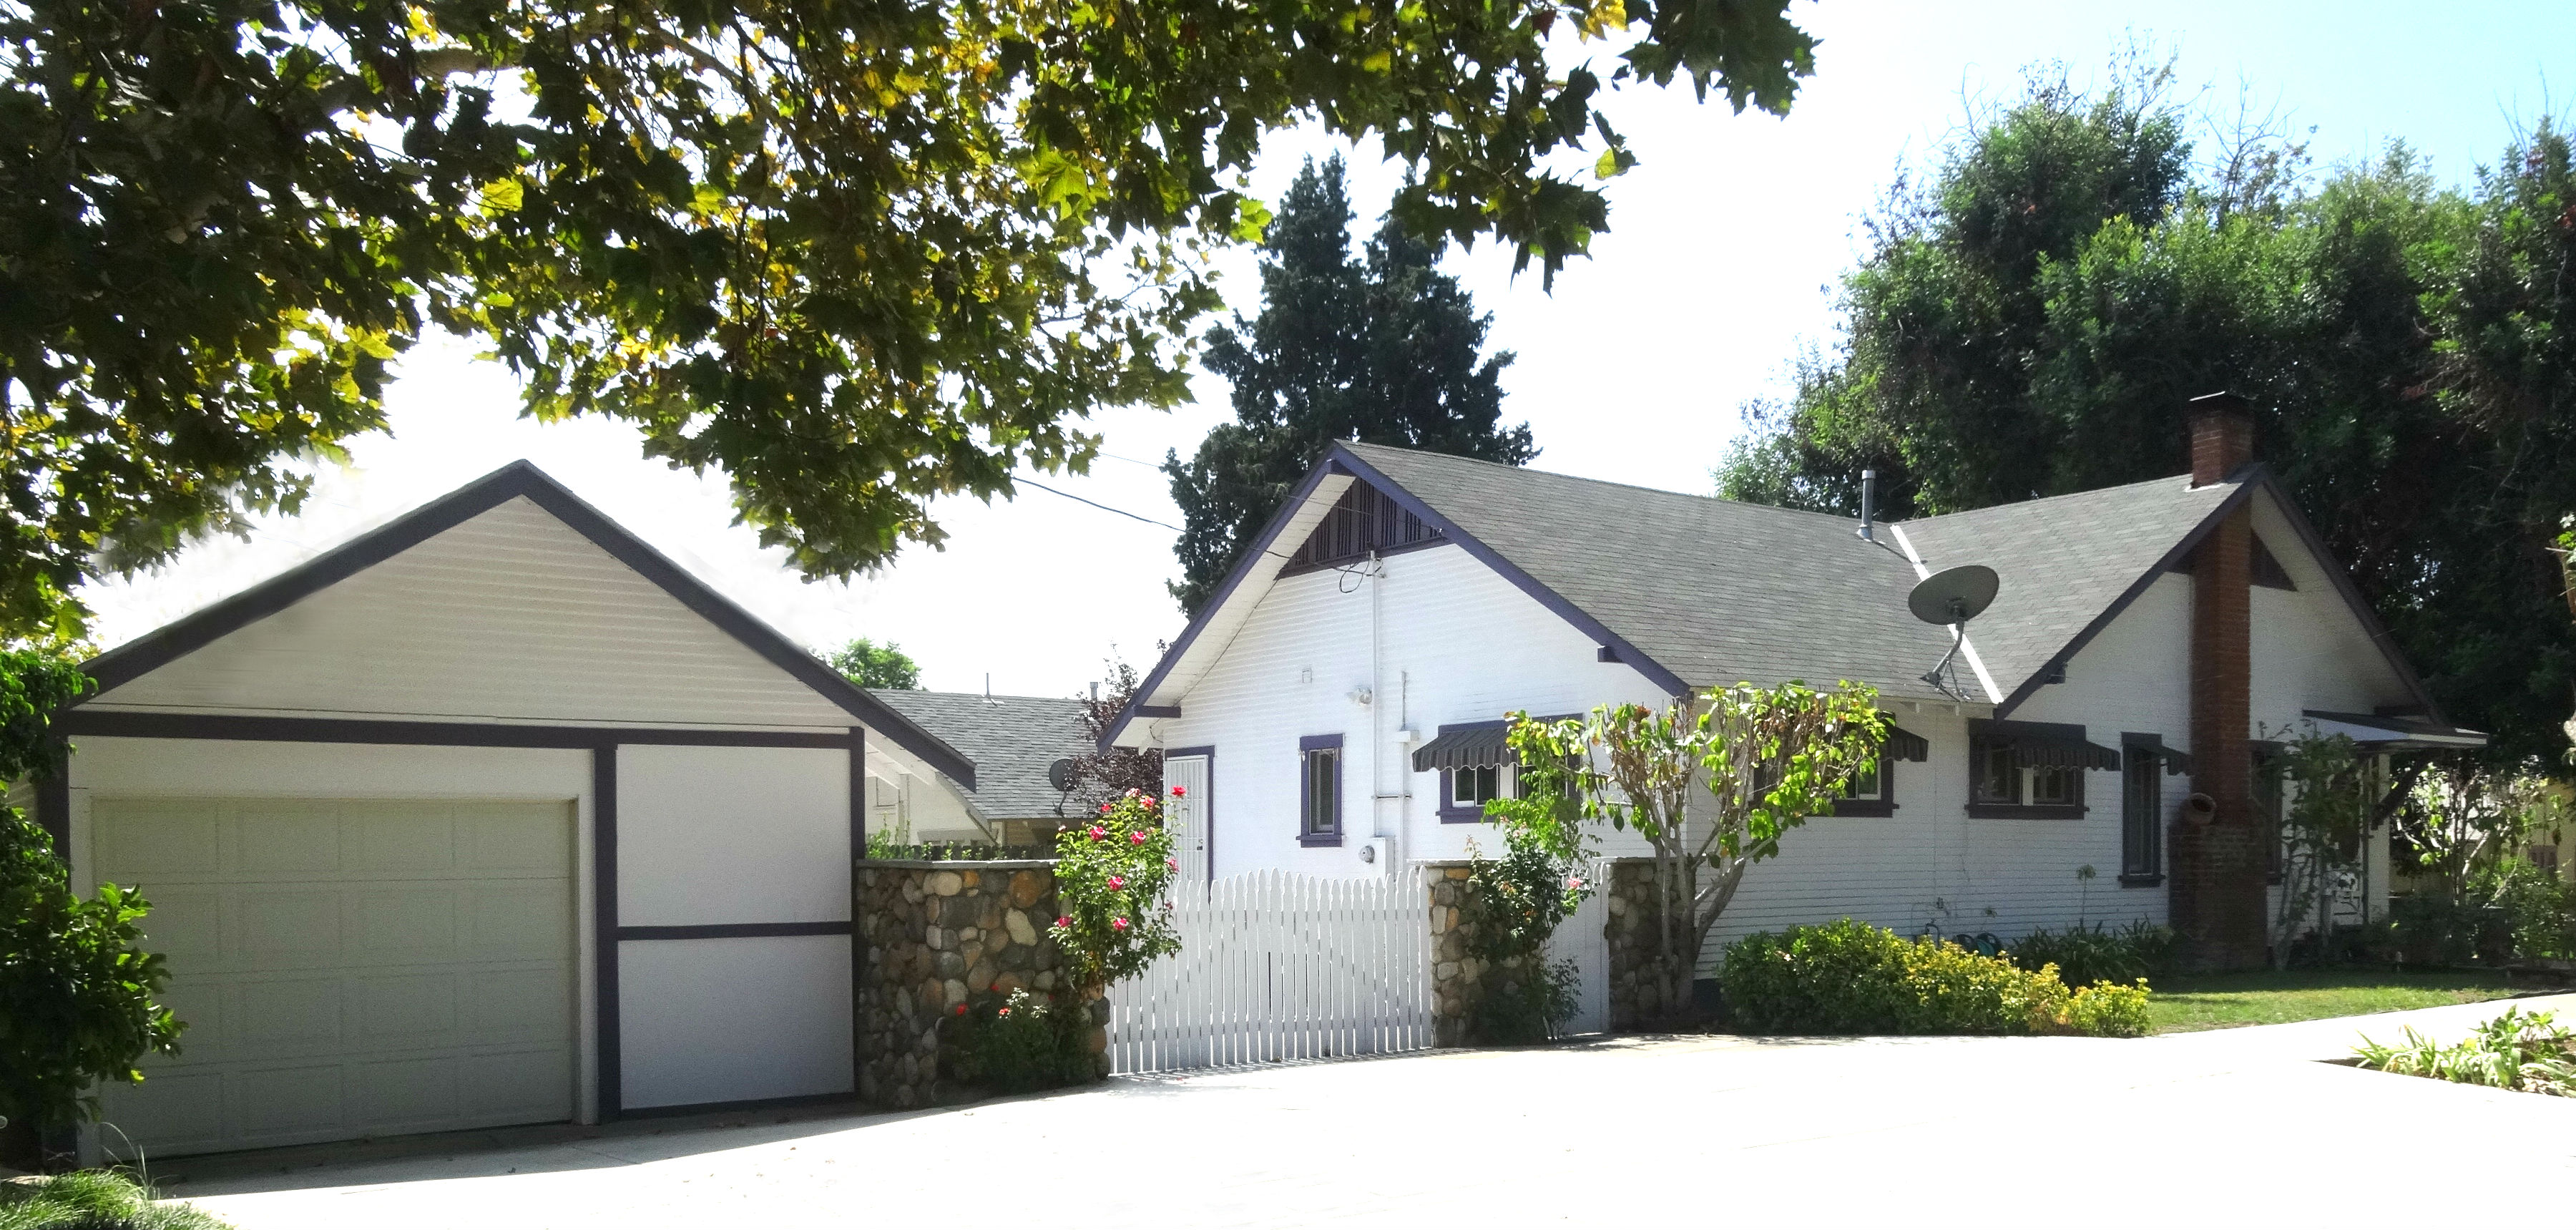 Oversized 1-car garage with extra  storage space. Driveway has been  widened, and there can be extra parking  spaces behind picket fence. Total of 6  parking spots!